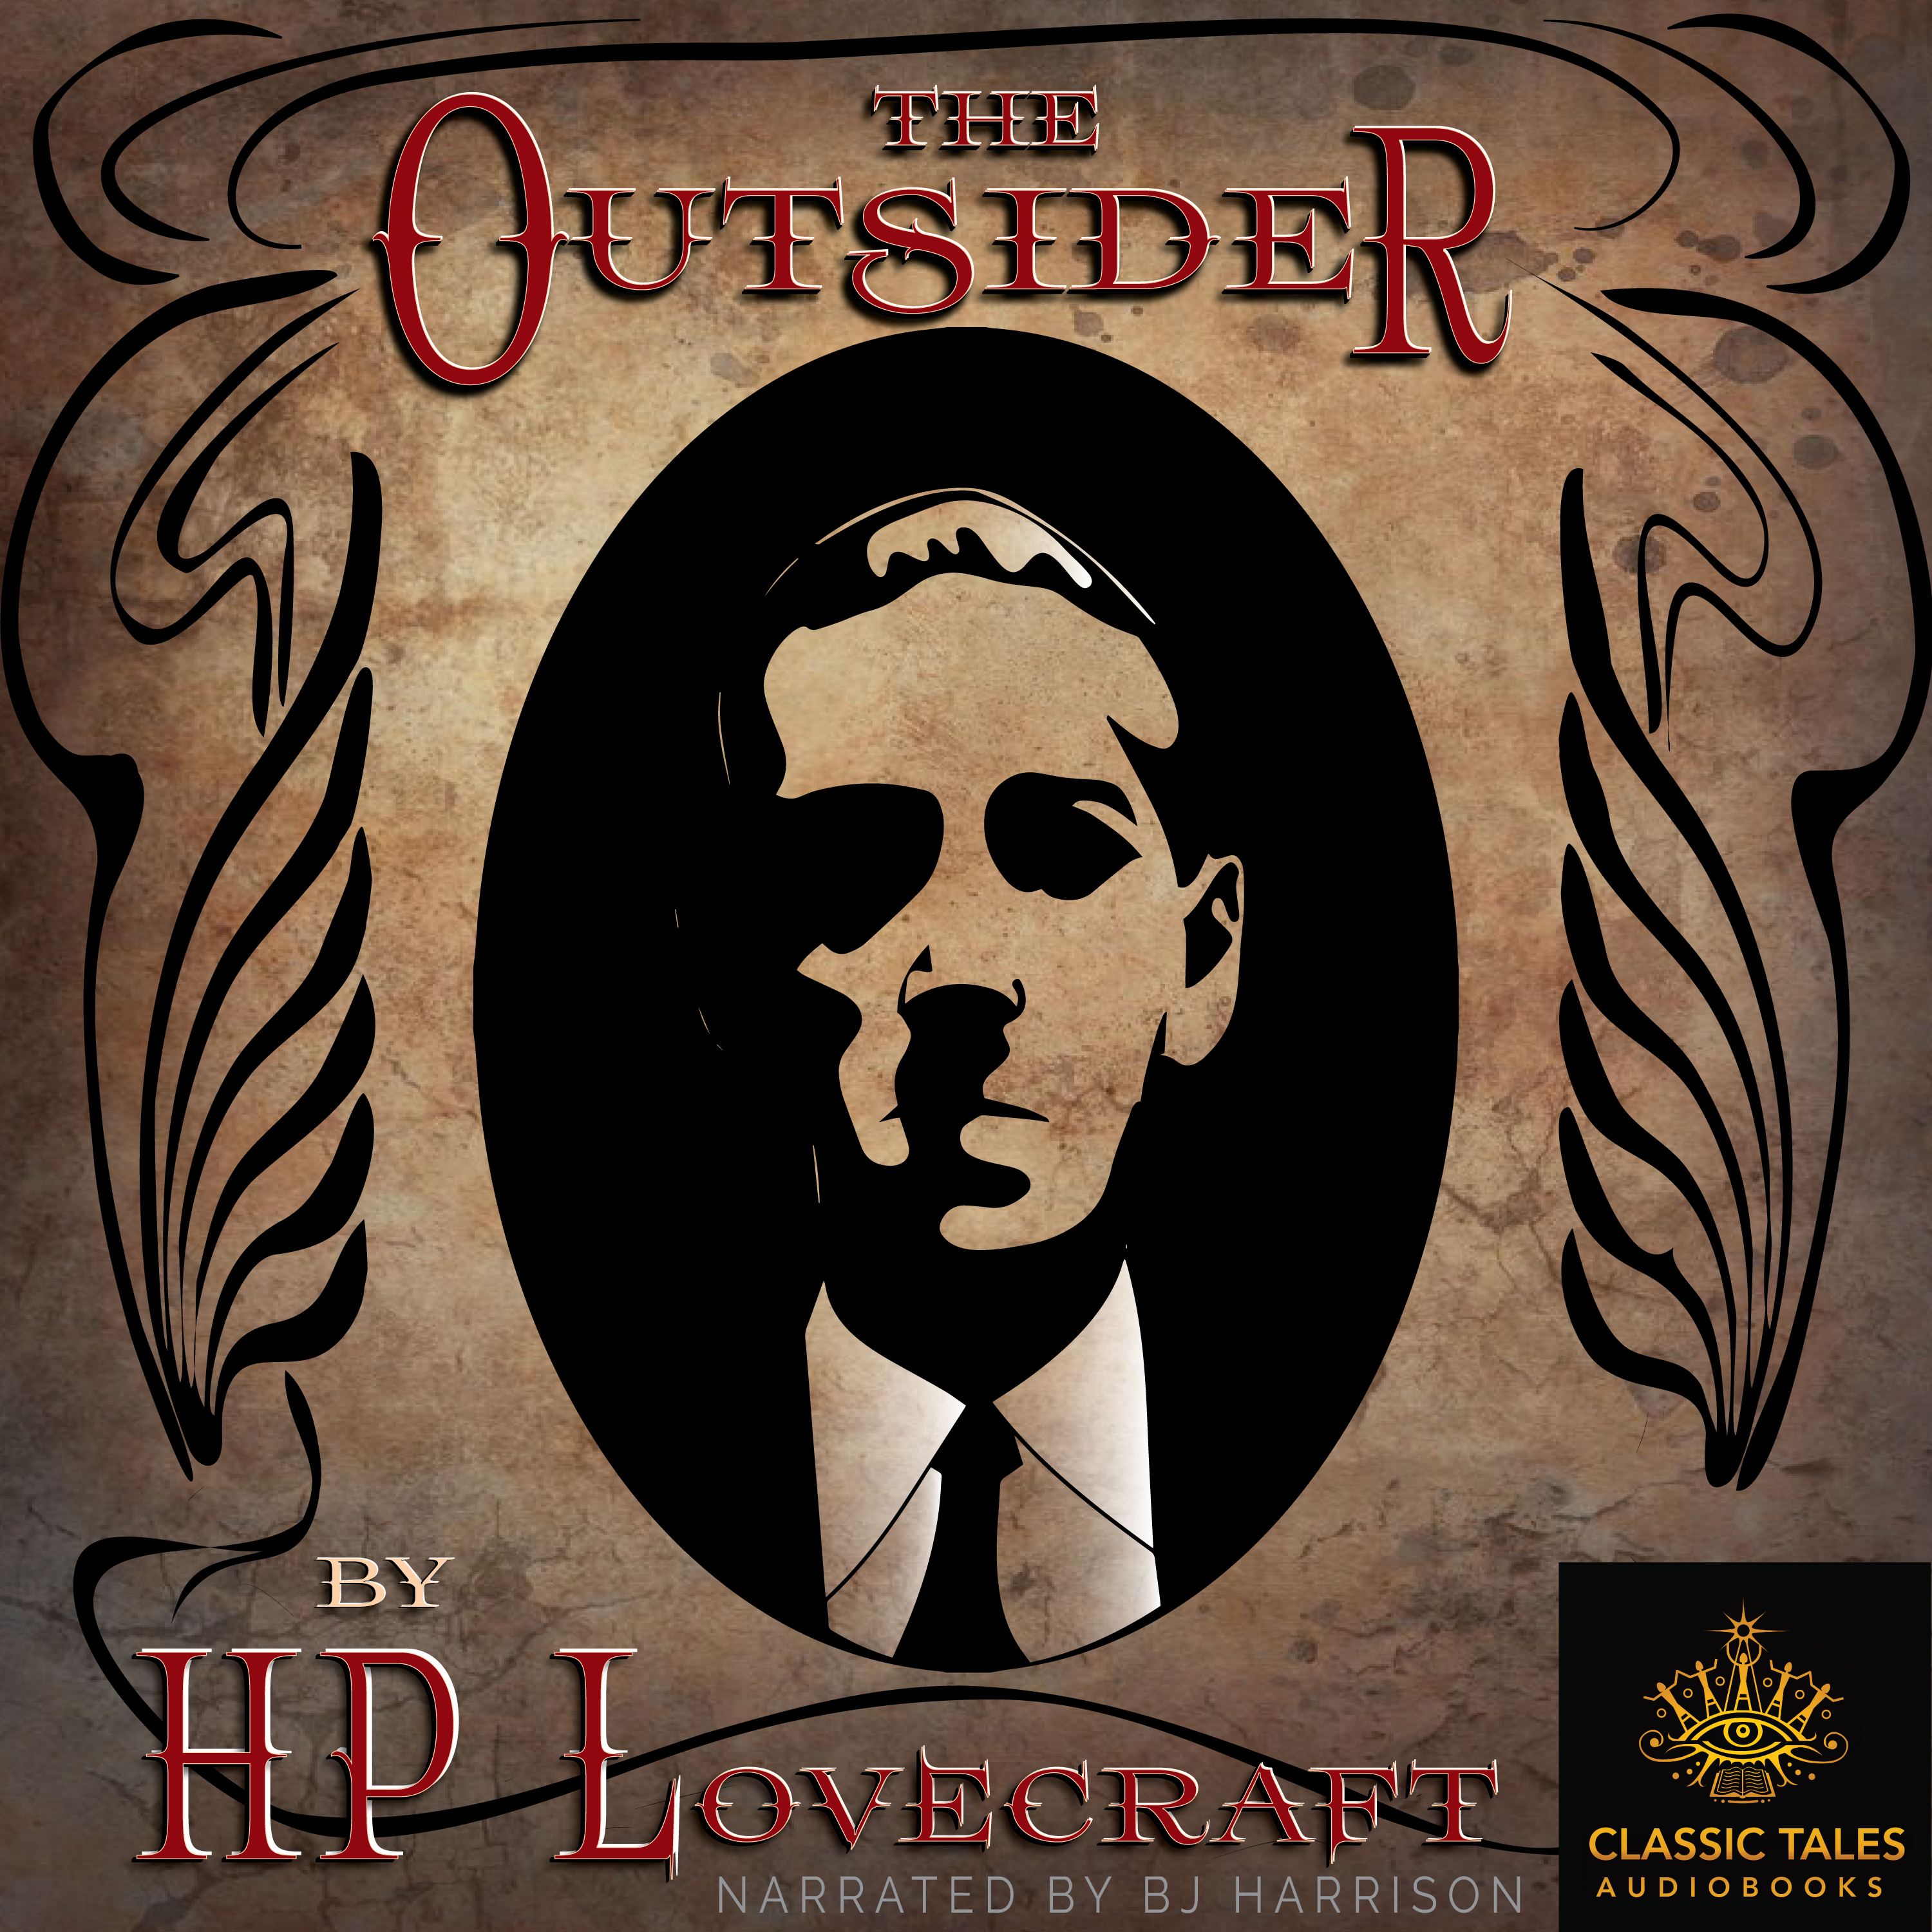 Ep. 719, The Outsider, by H.P. Lovecraft